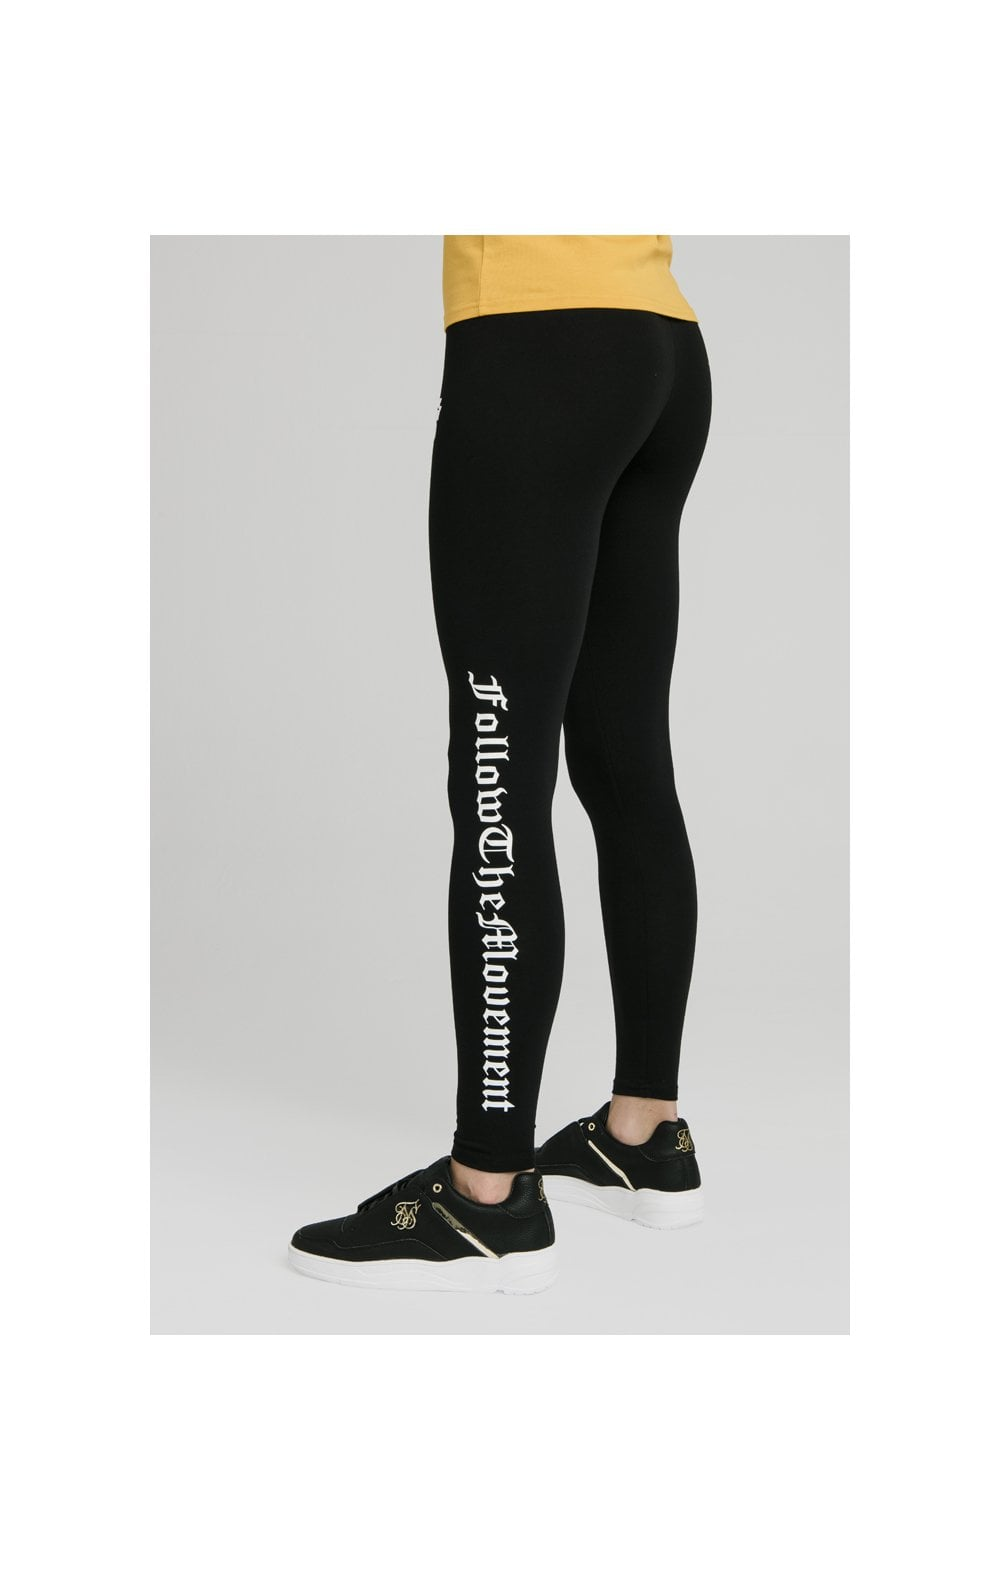 "SikSilk Legging avec Texte ""Follow the Movement"" - Noir (2)"